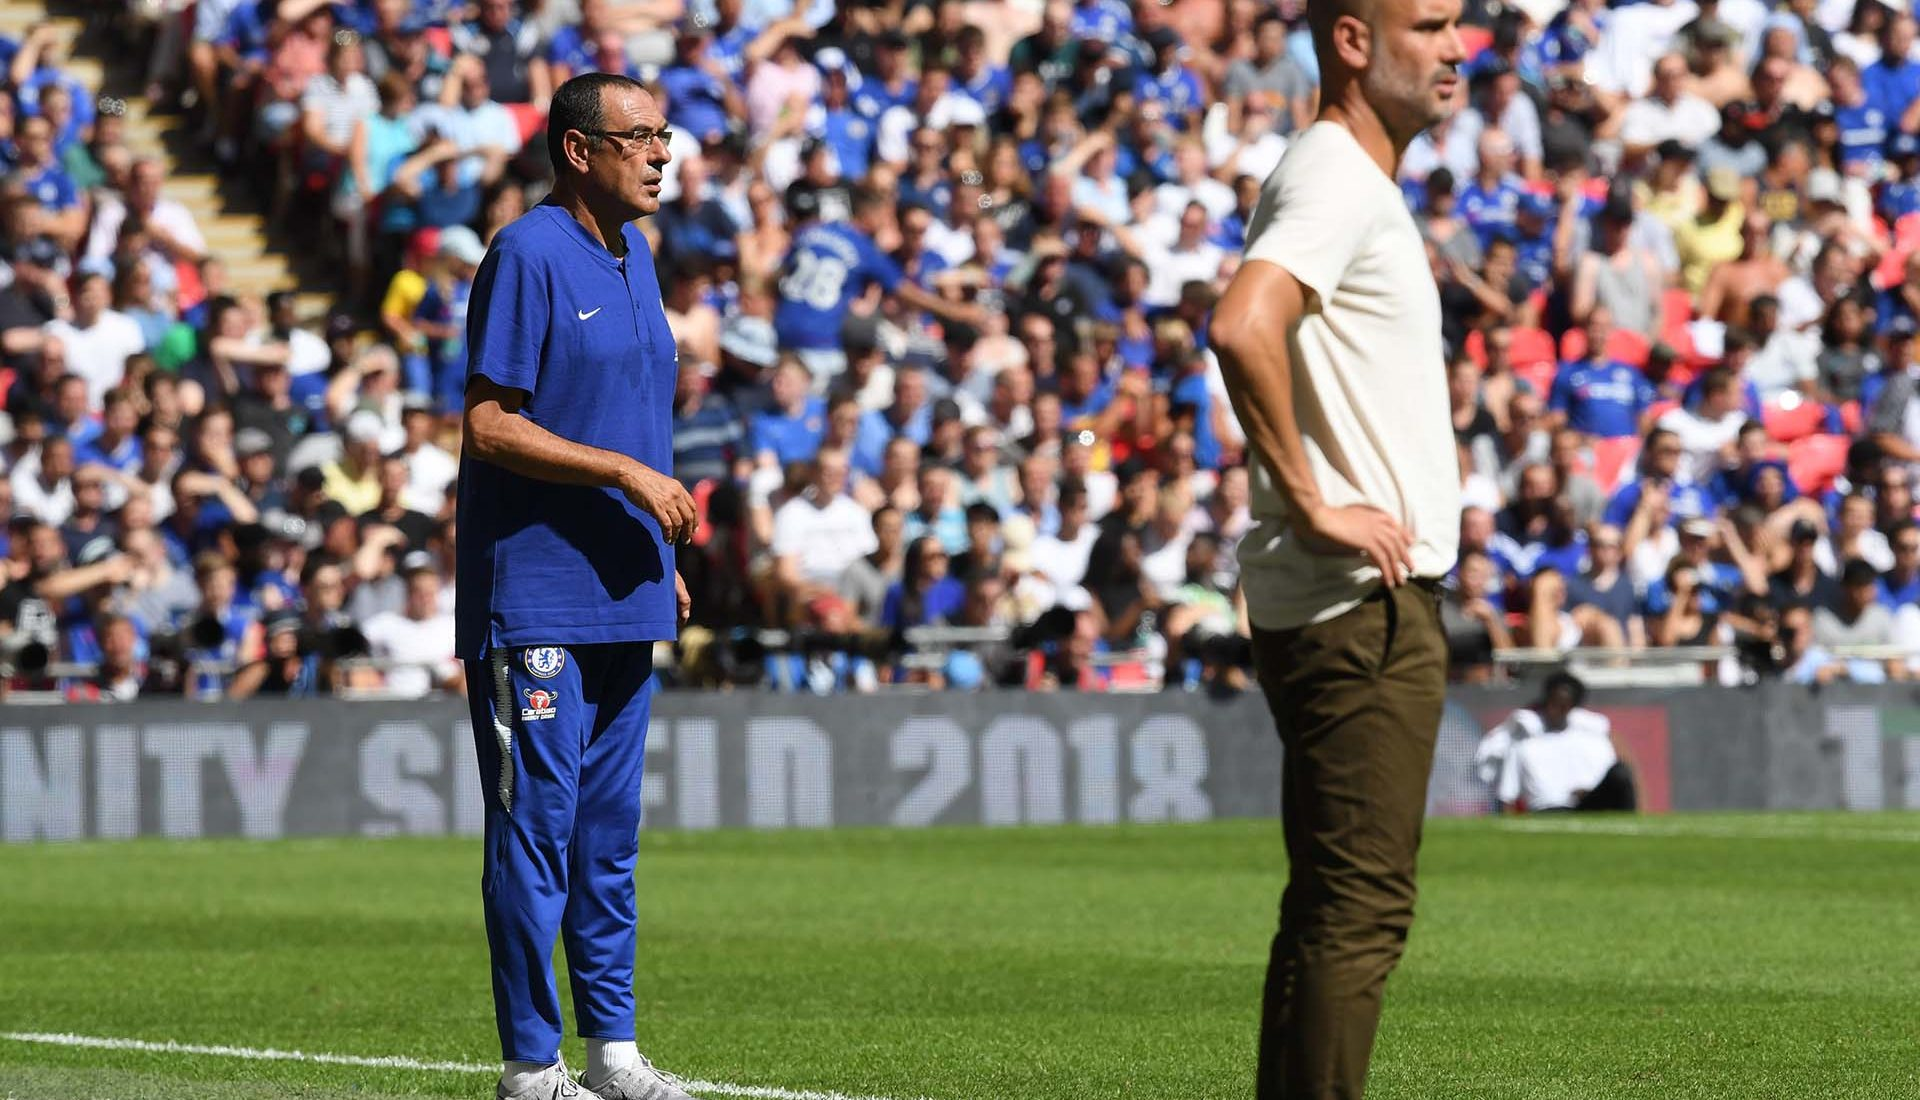 Maurizio Sarri, Head Coach of Chelsea looks on during the FA Community Shield between Manchester City and Chelsea at Wembley Stadium on August 5, 2018 in London.